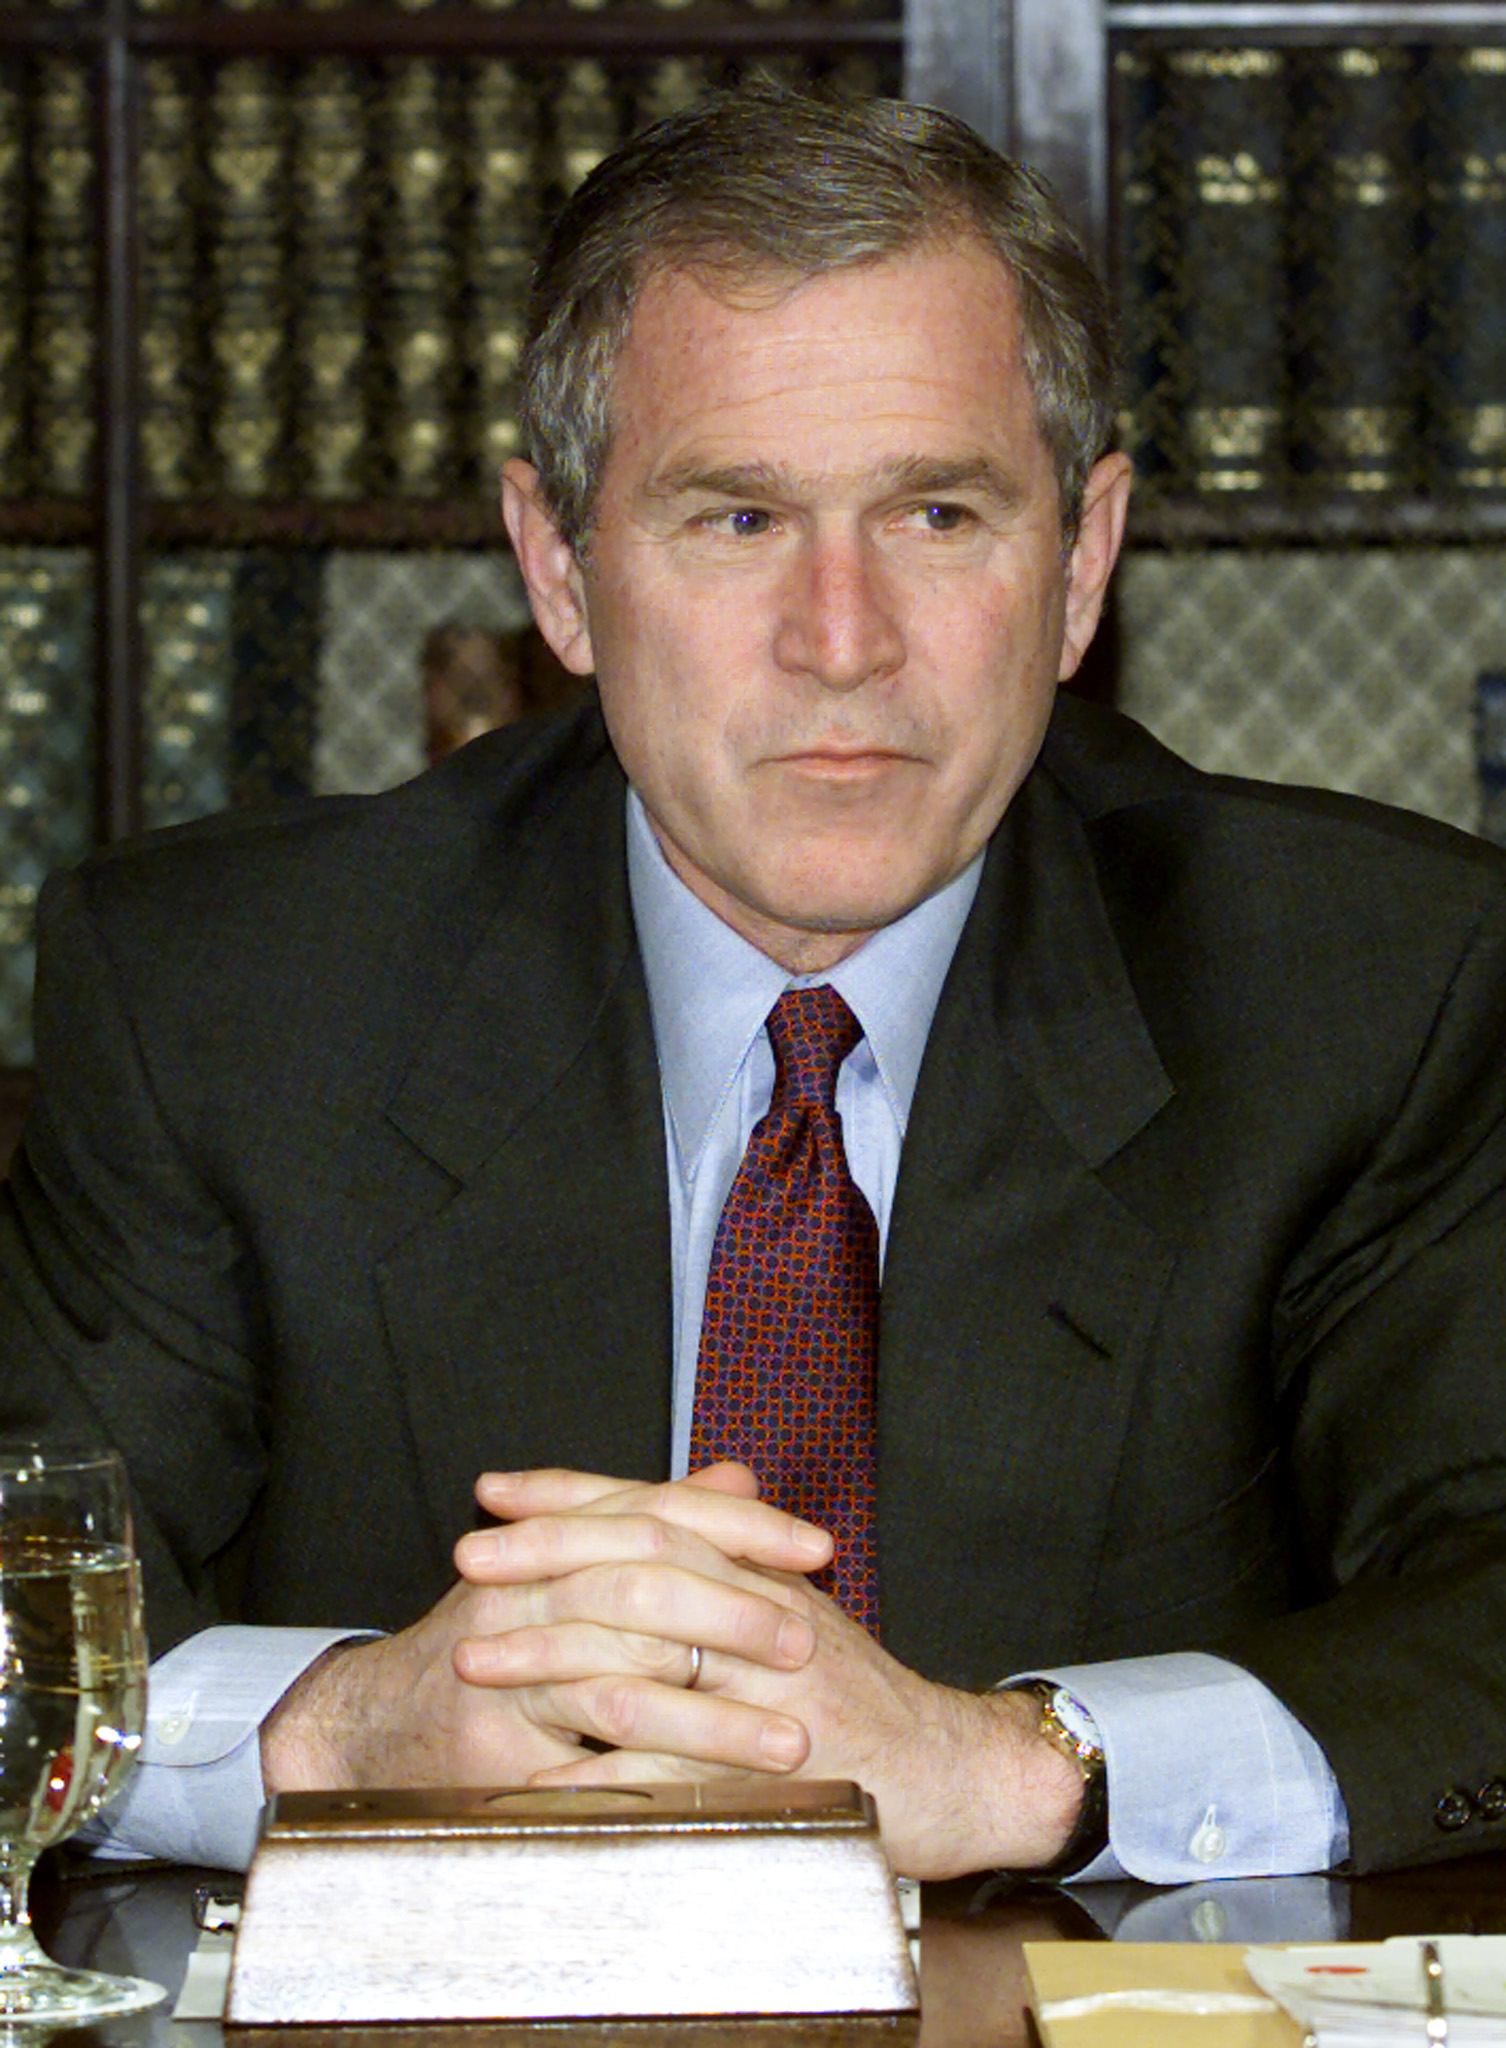 President George W. Bush (served in 2001-2009). ©REUTERS/William Philpott